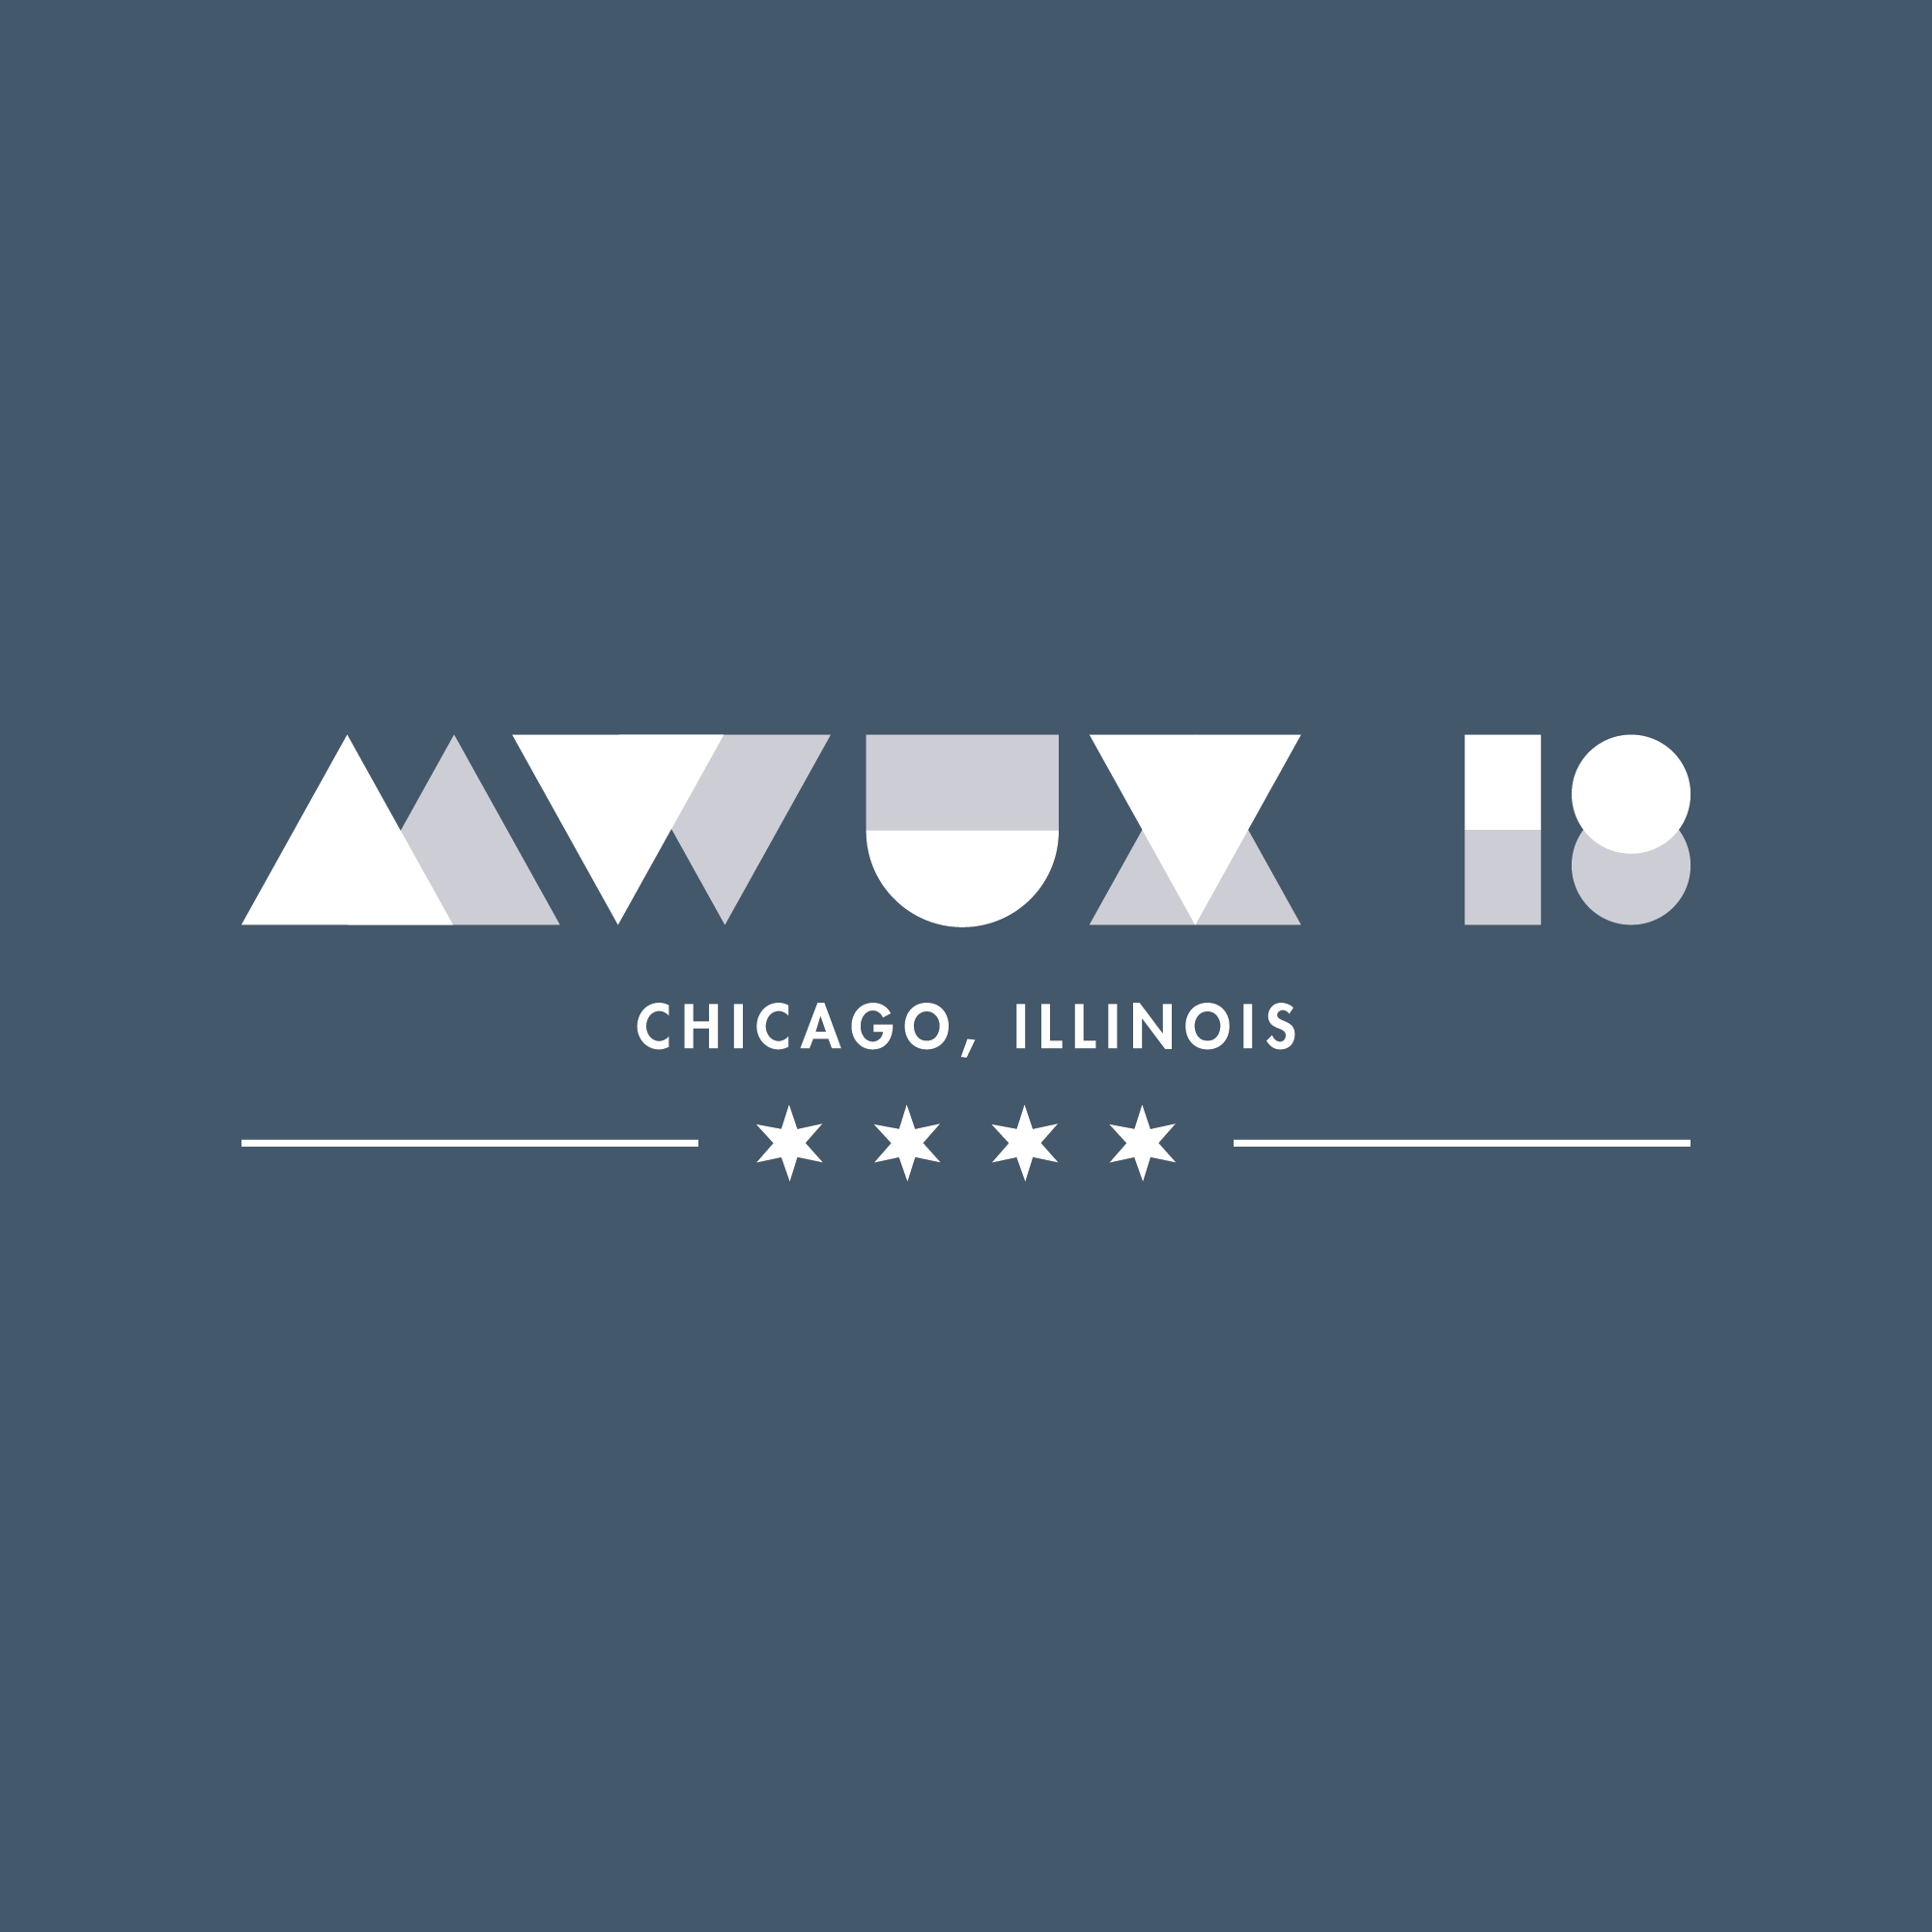 MWUX 2018: Organizing Committee Member